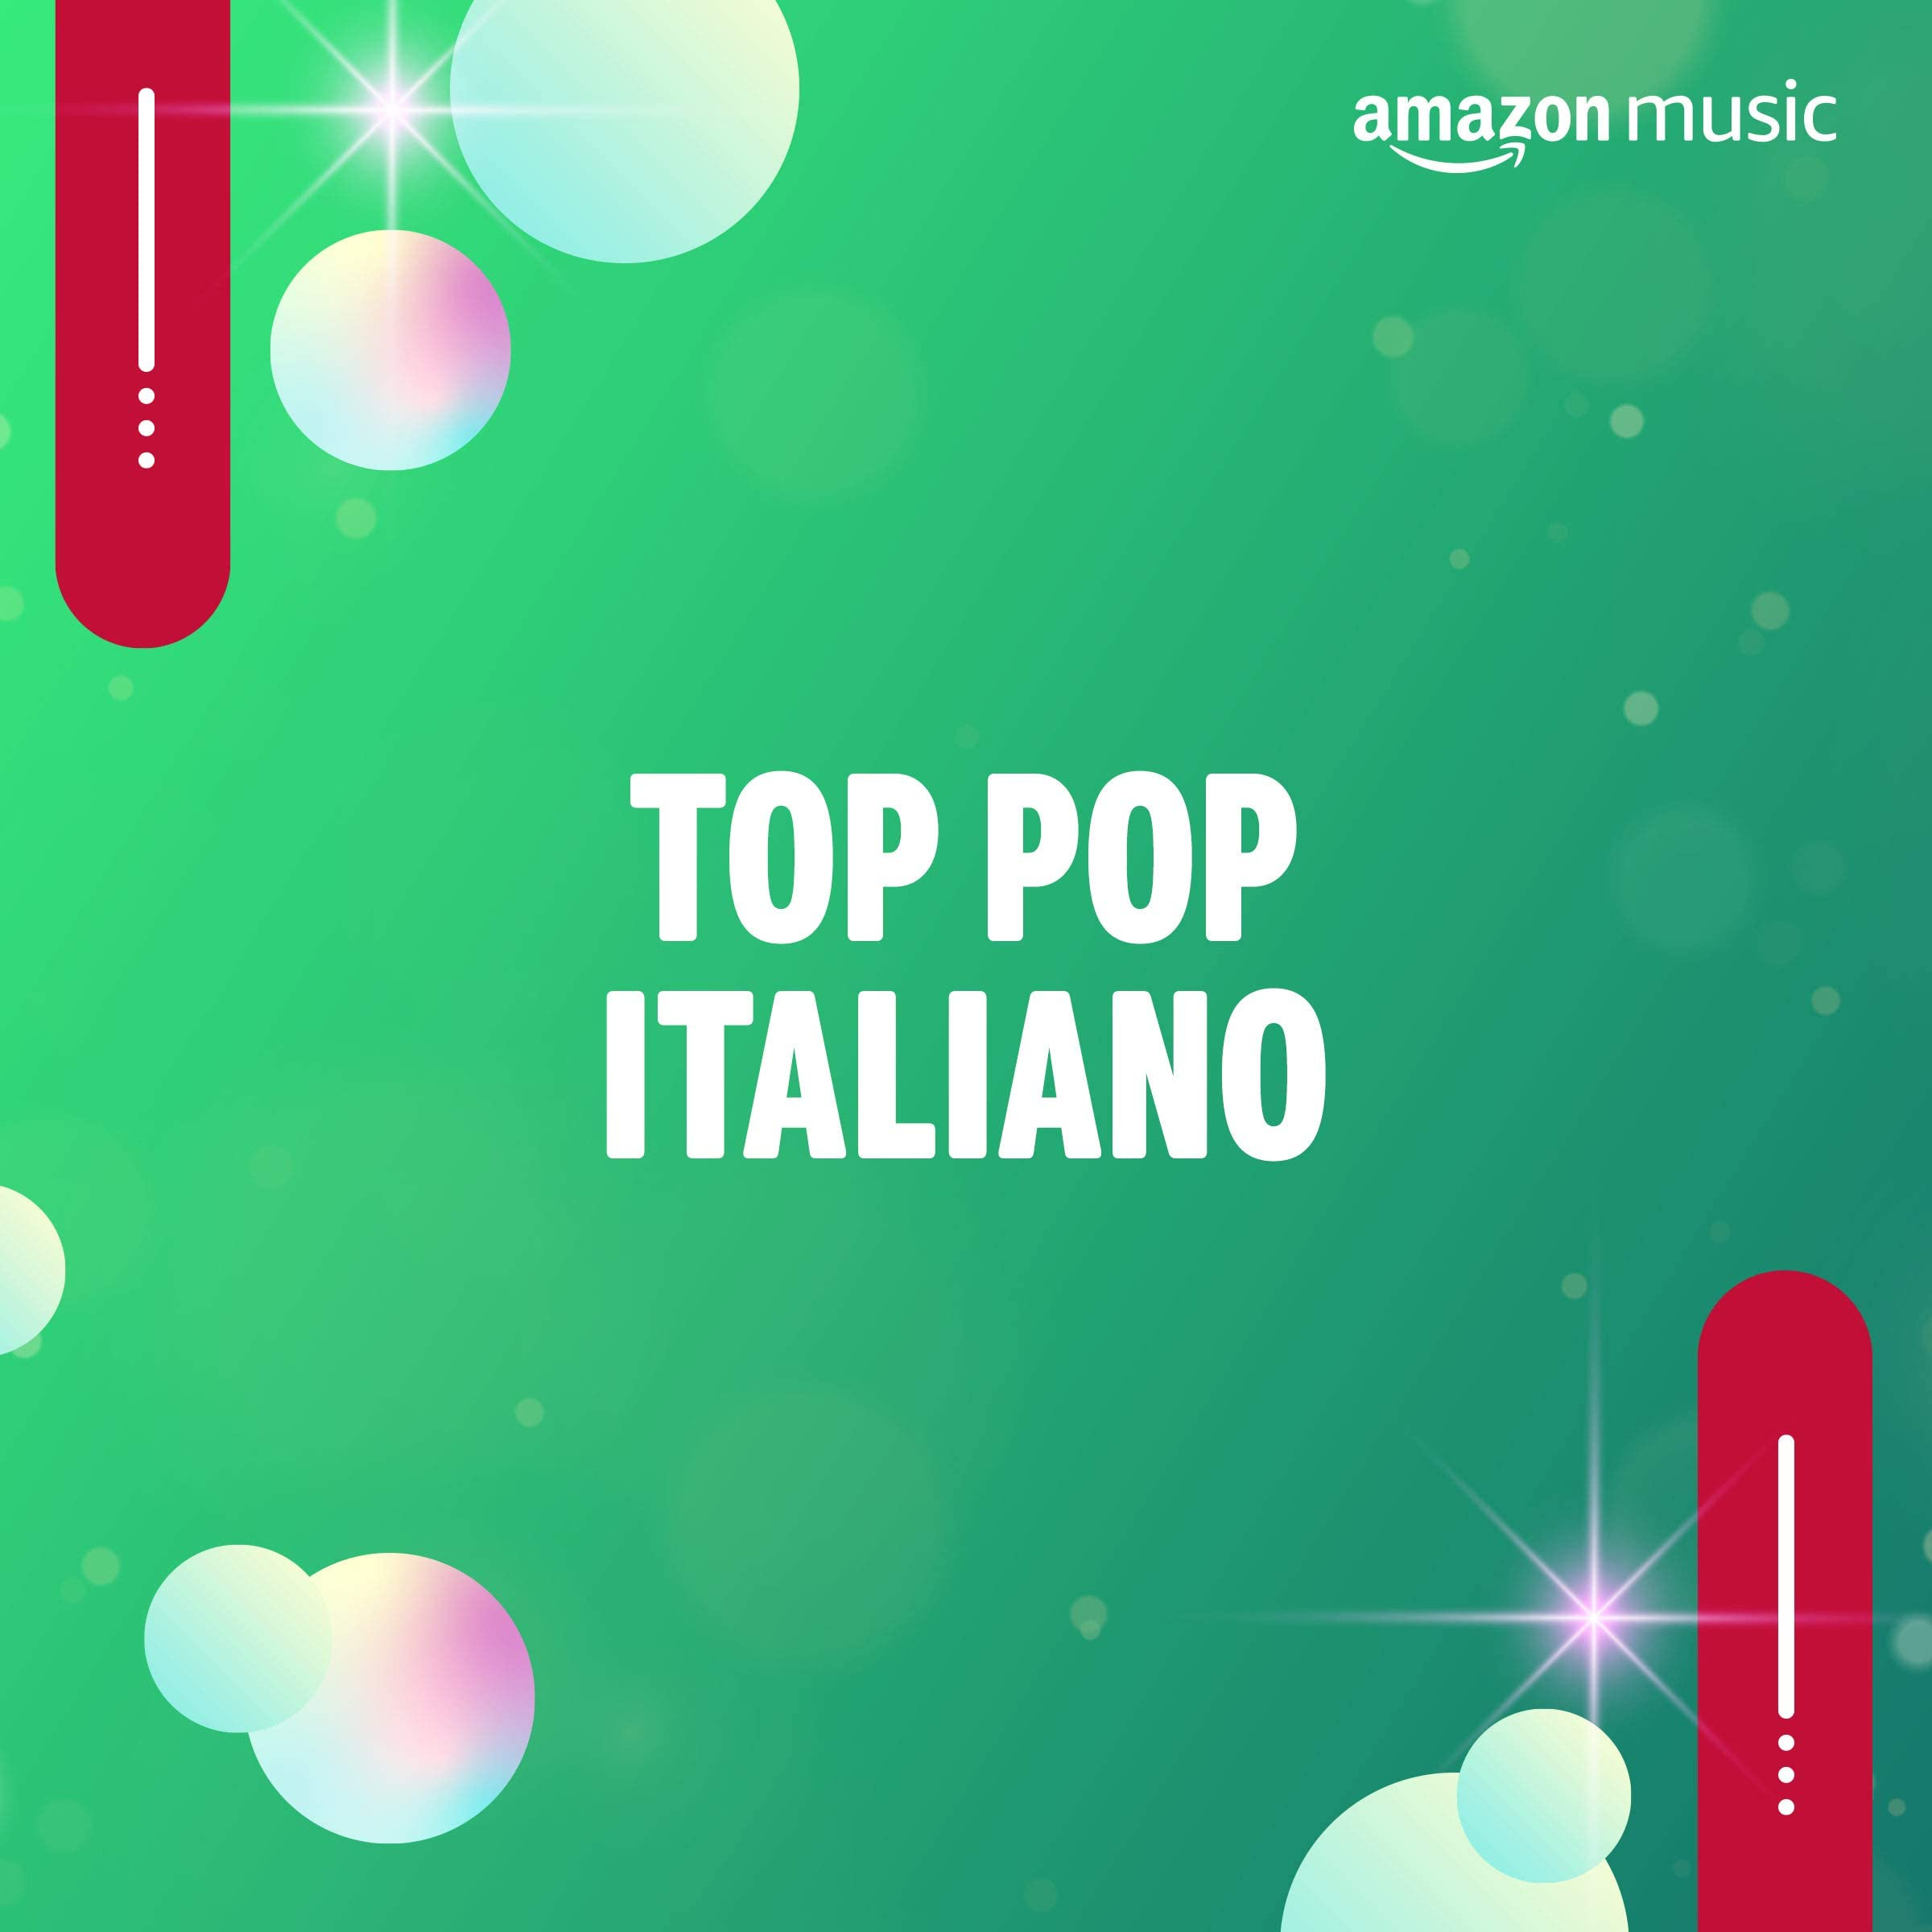 Top Pop italiano